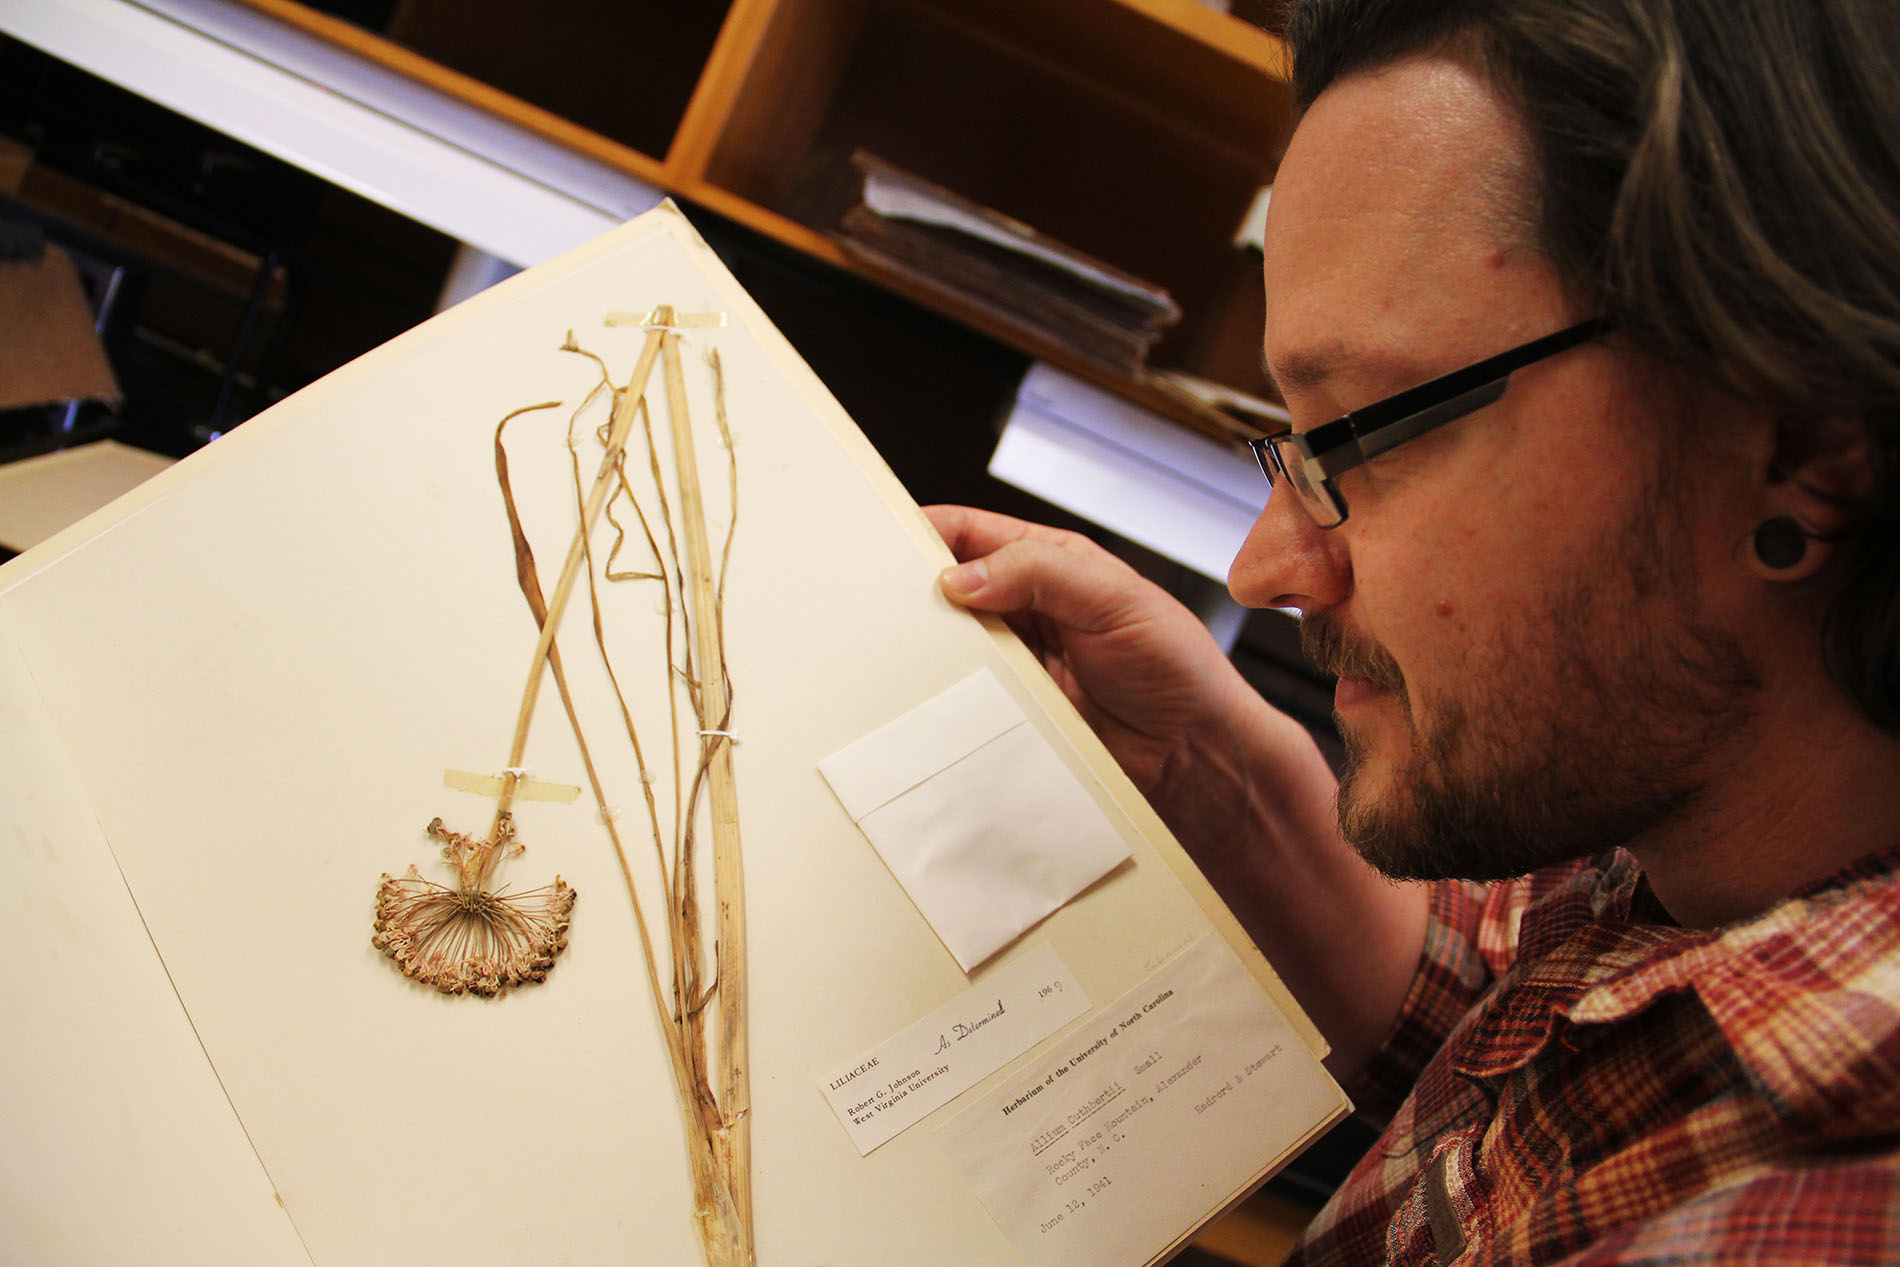 Derick Poindexter looks at a dried specimen of Keever's onion